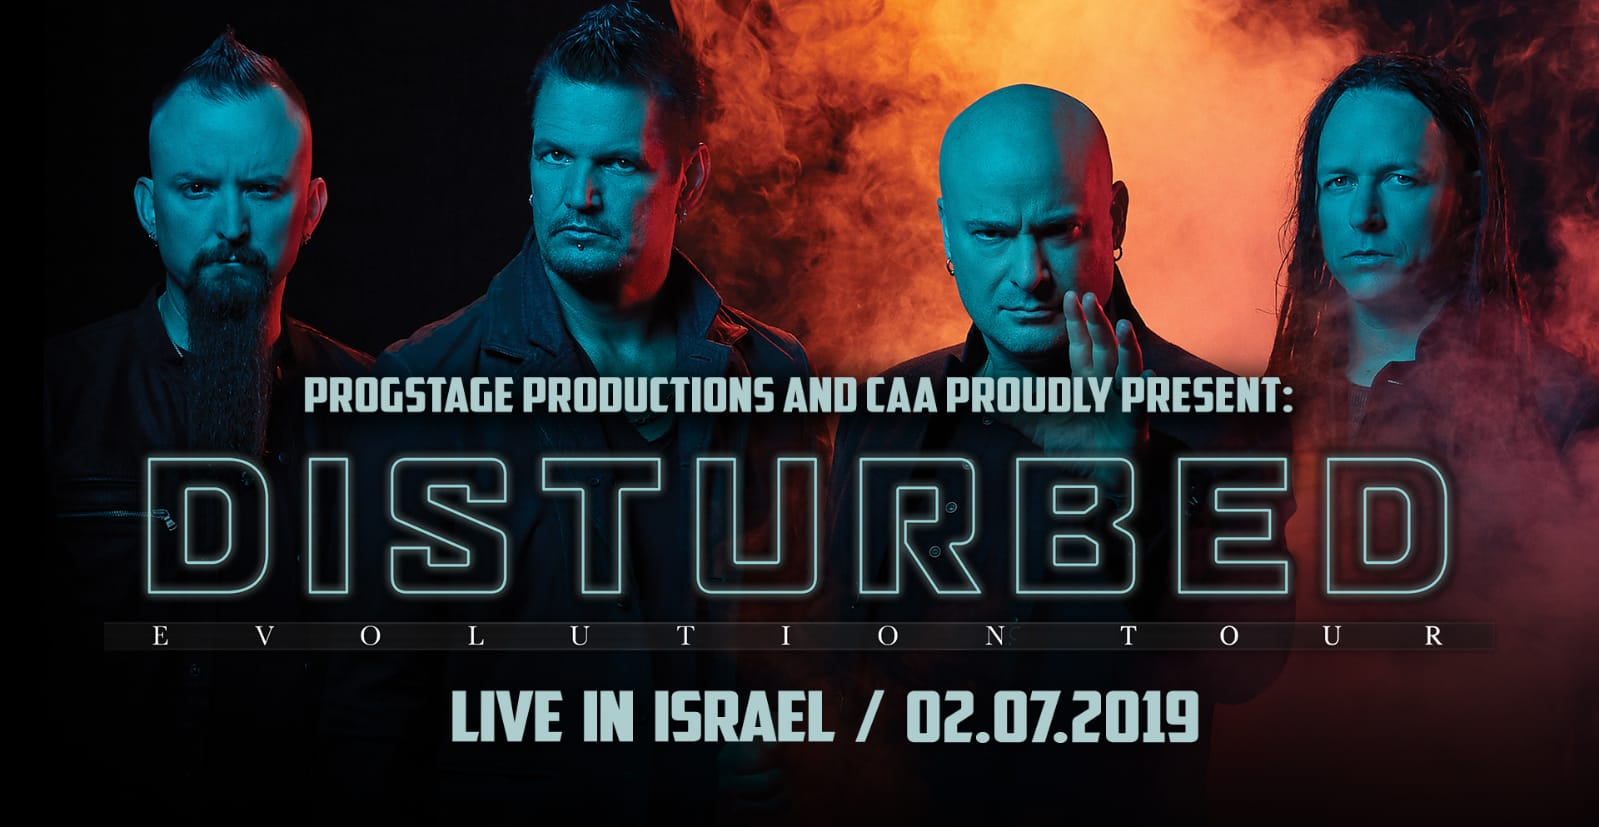 (Disturbed Evolution Tour (Live in Israel